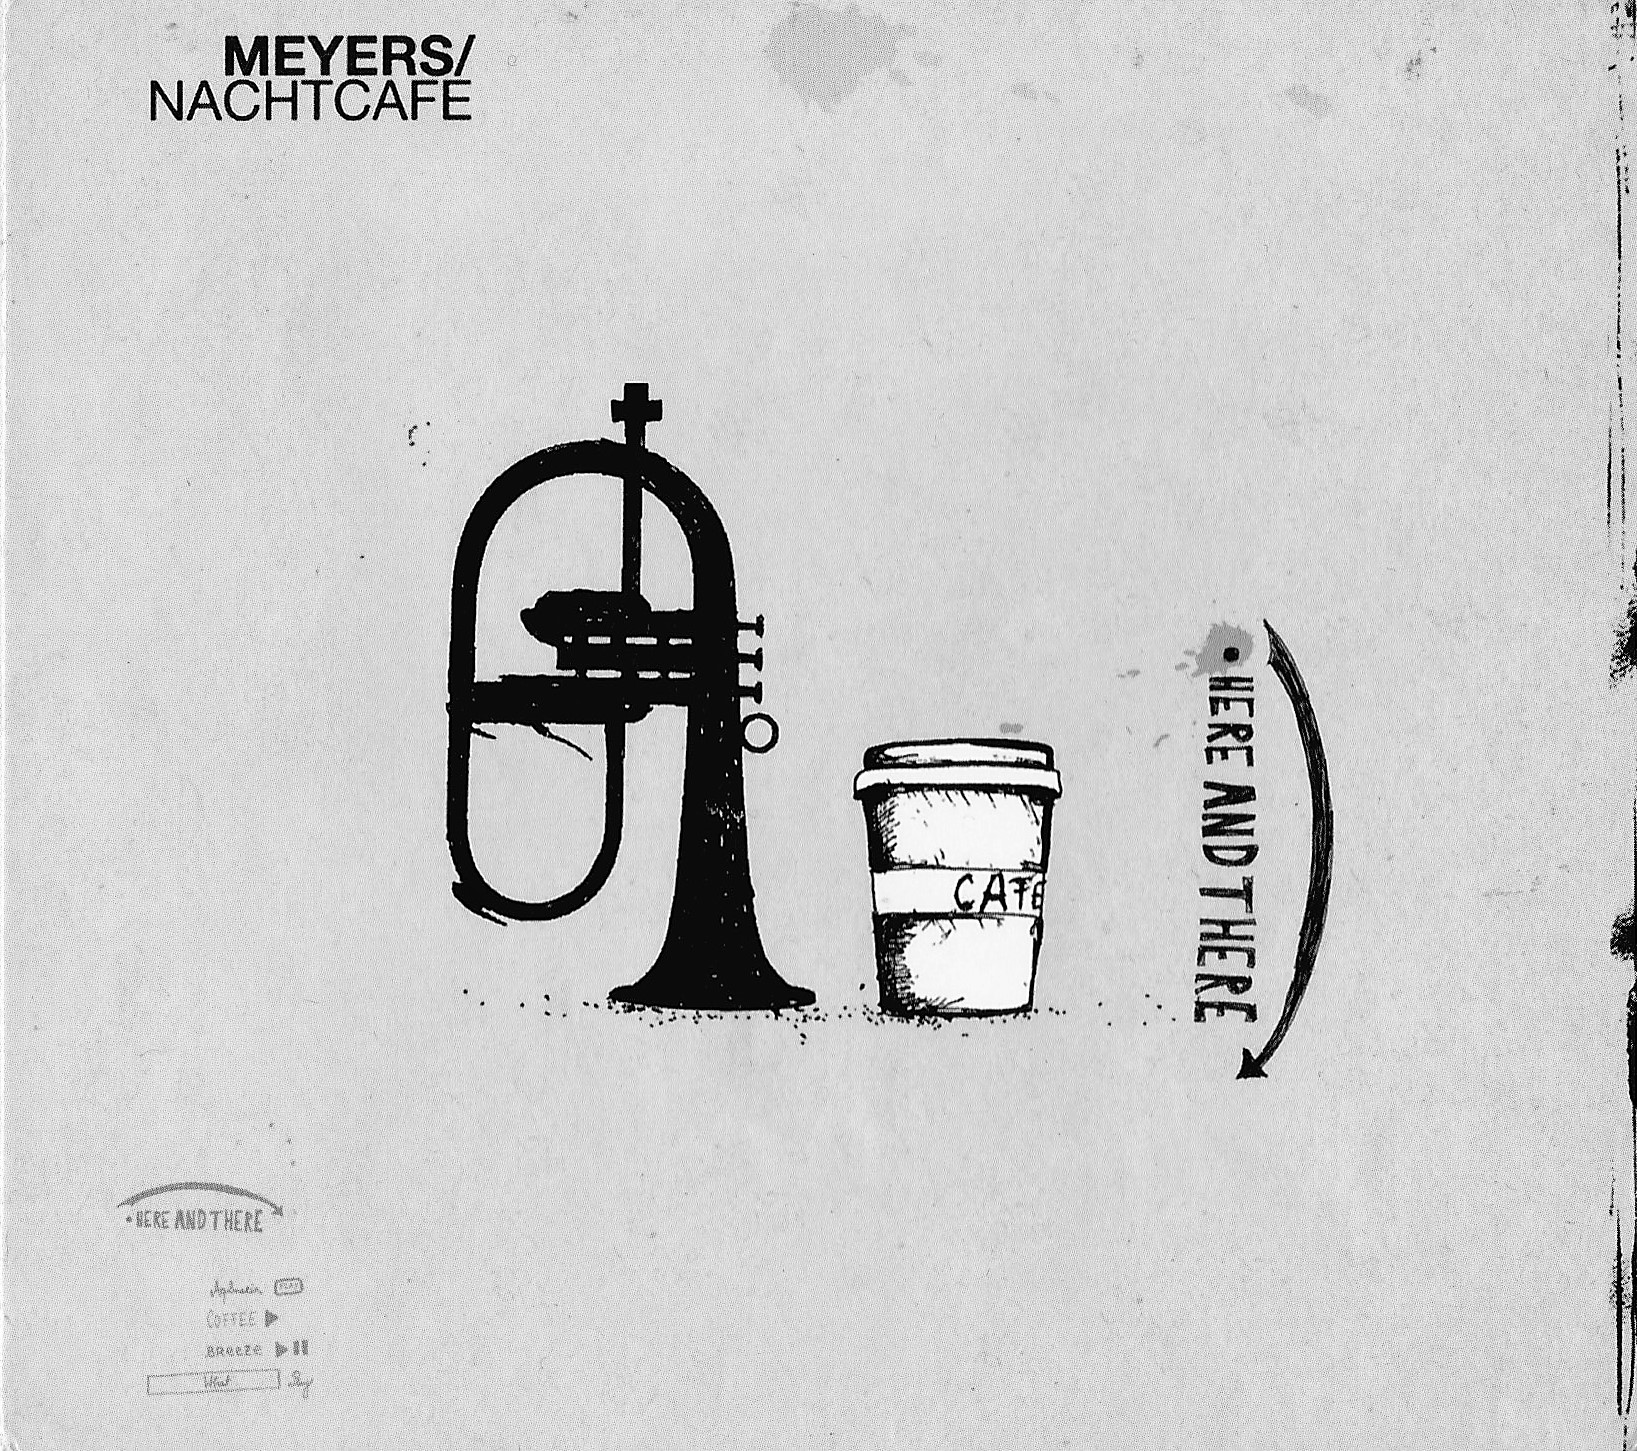 Meyers Nachtcafe - here and there